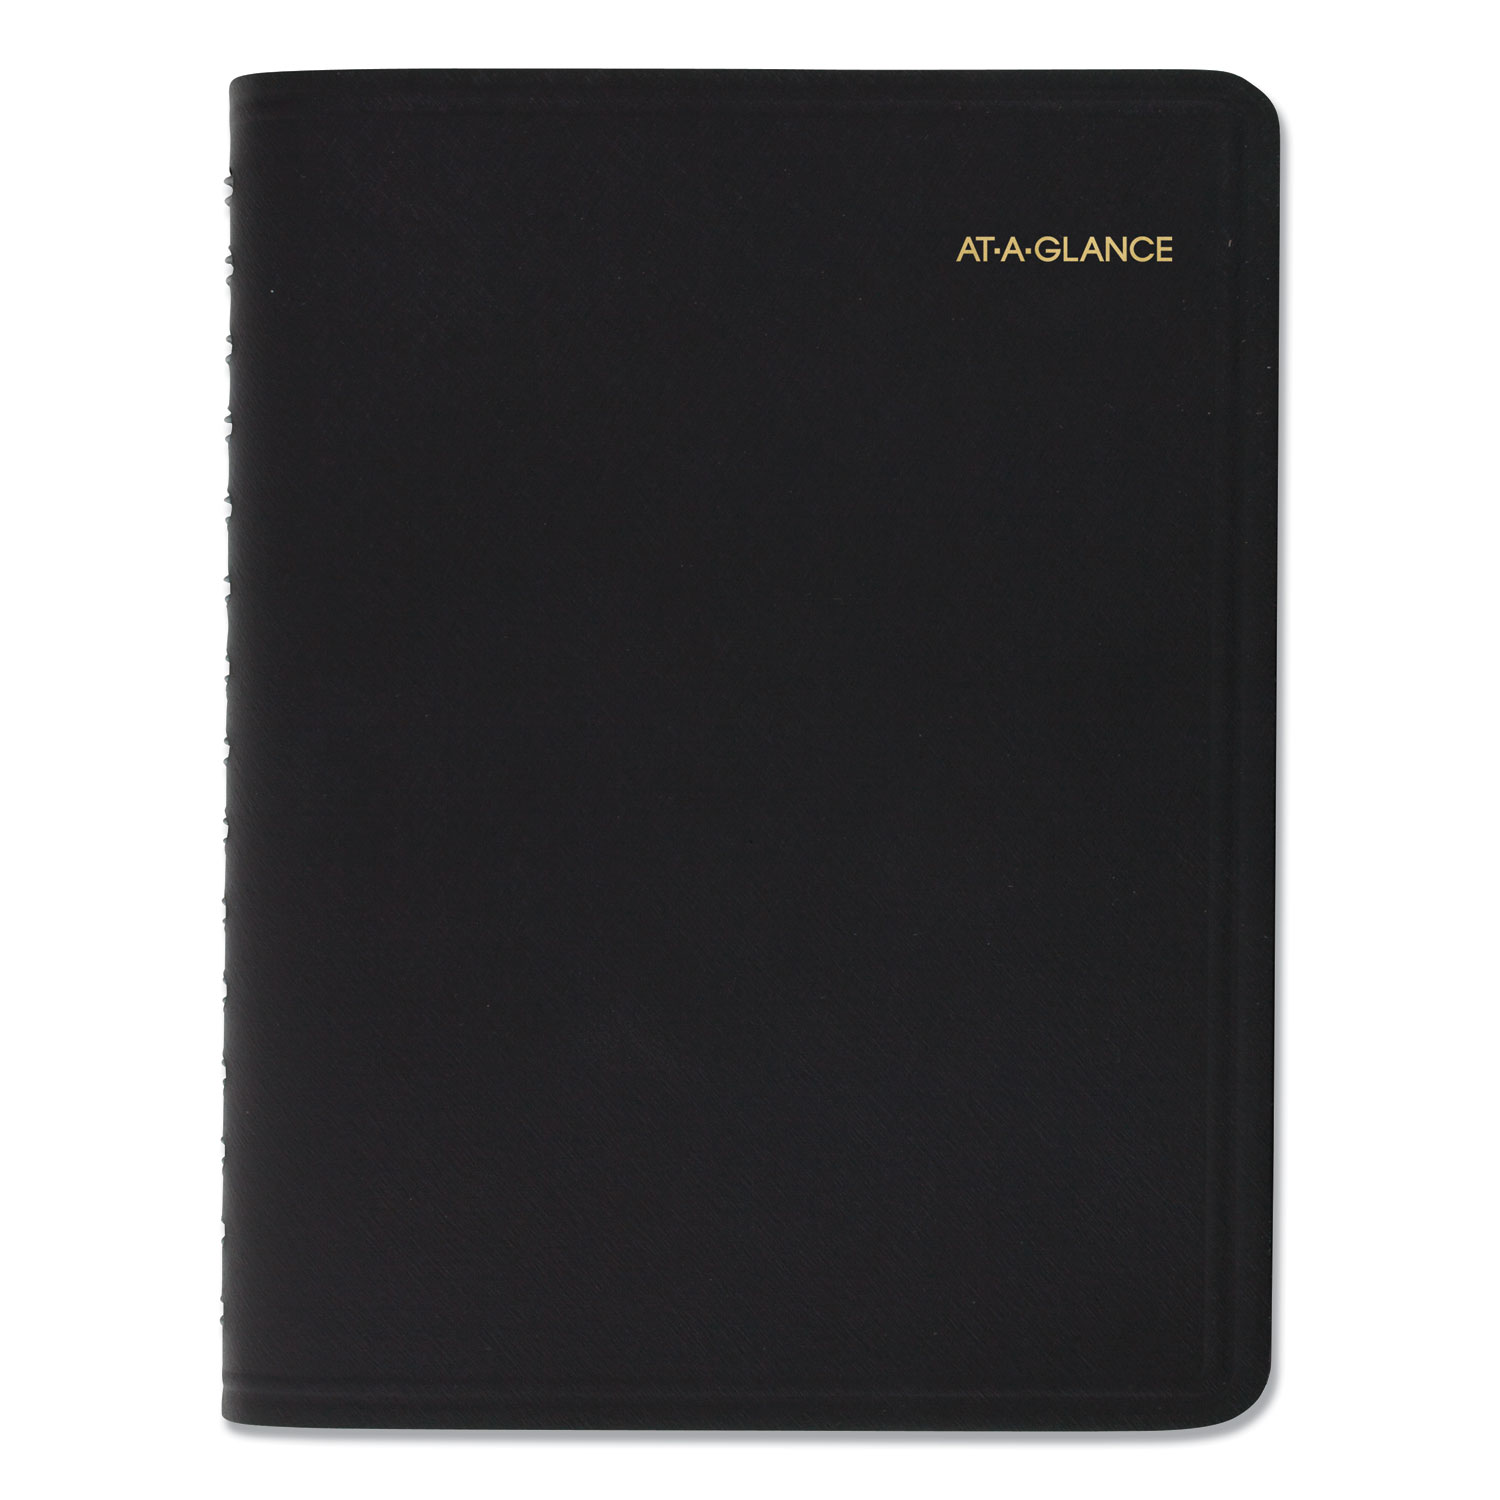 Four-Person Group Daily Appointment Book, 8 X 10 7/8, White, 2020